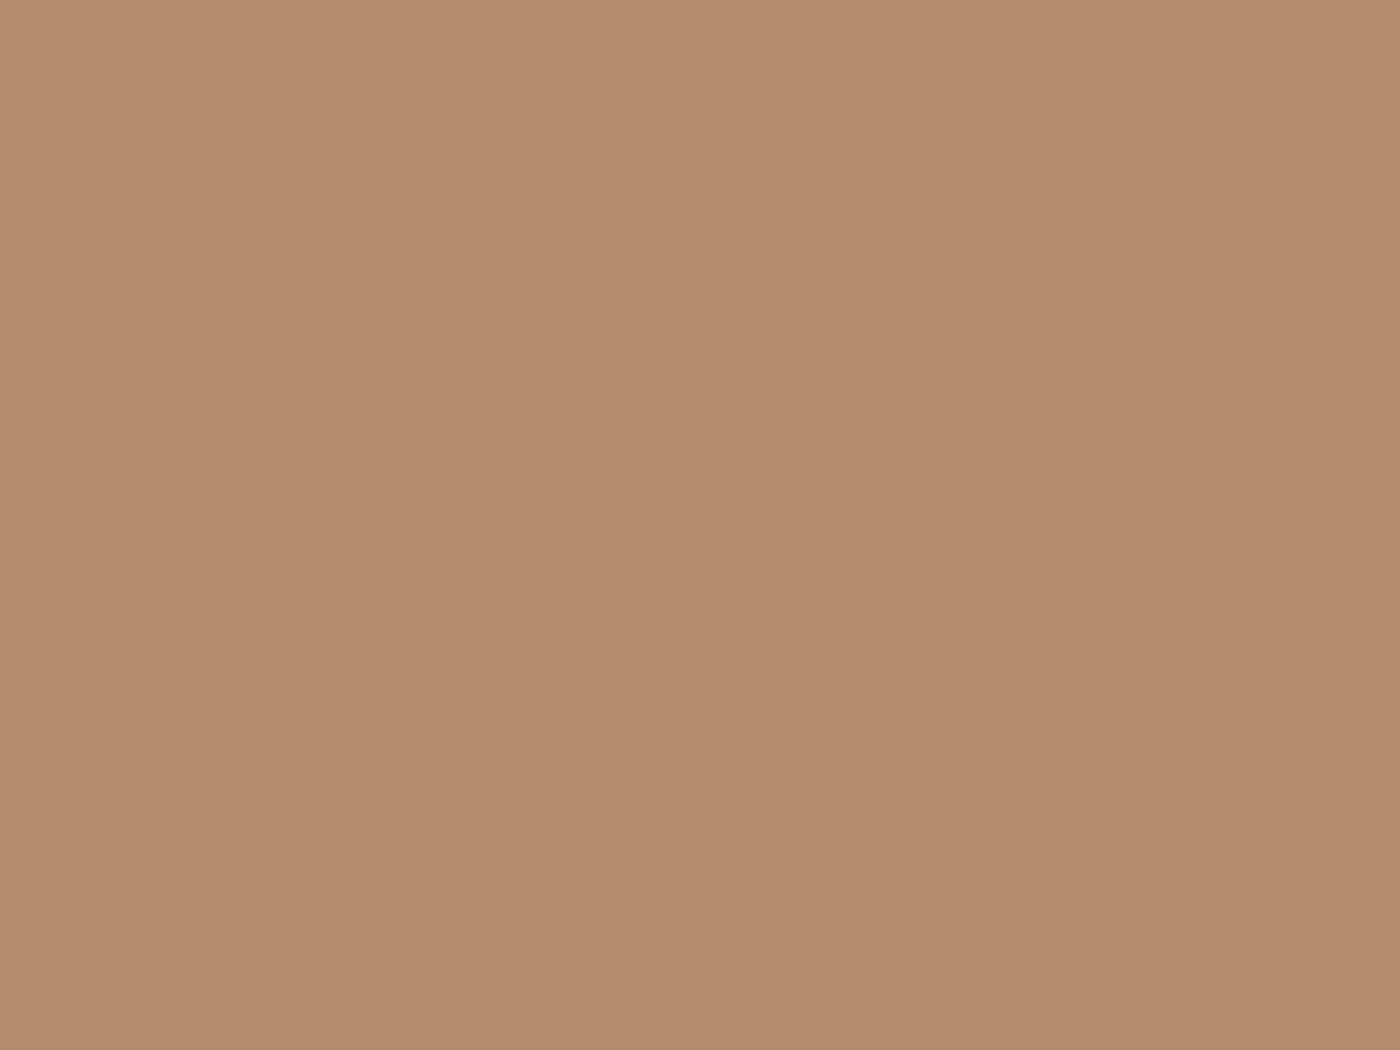 1400x1050 Light Taupe Solid Color Background